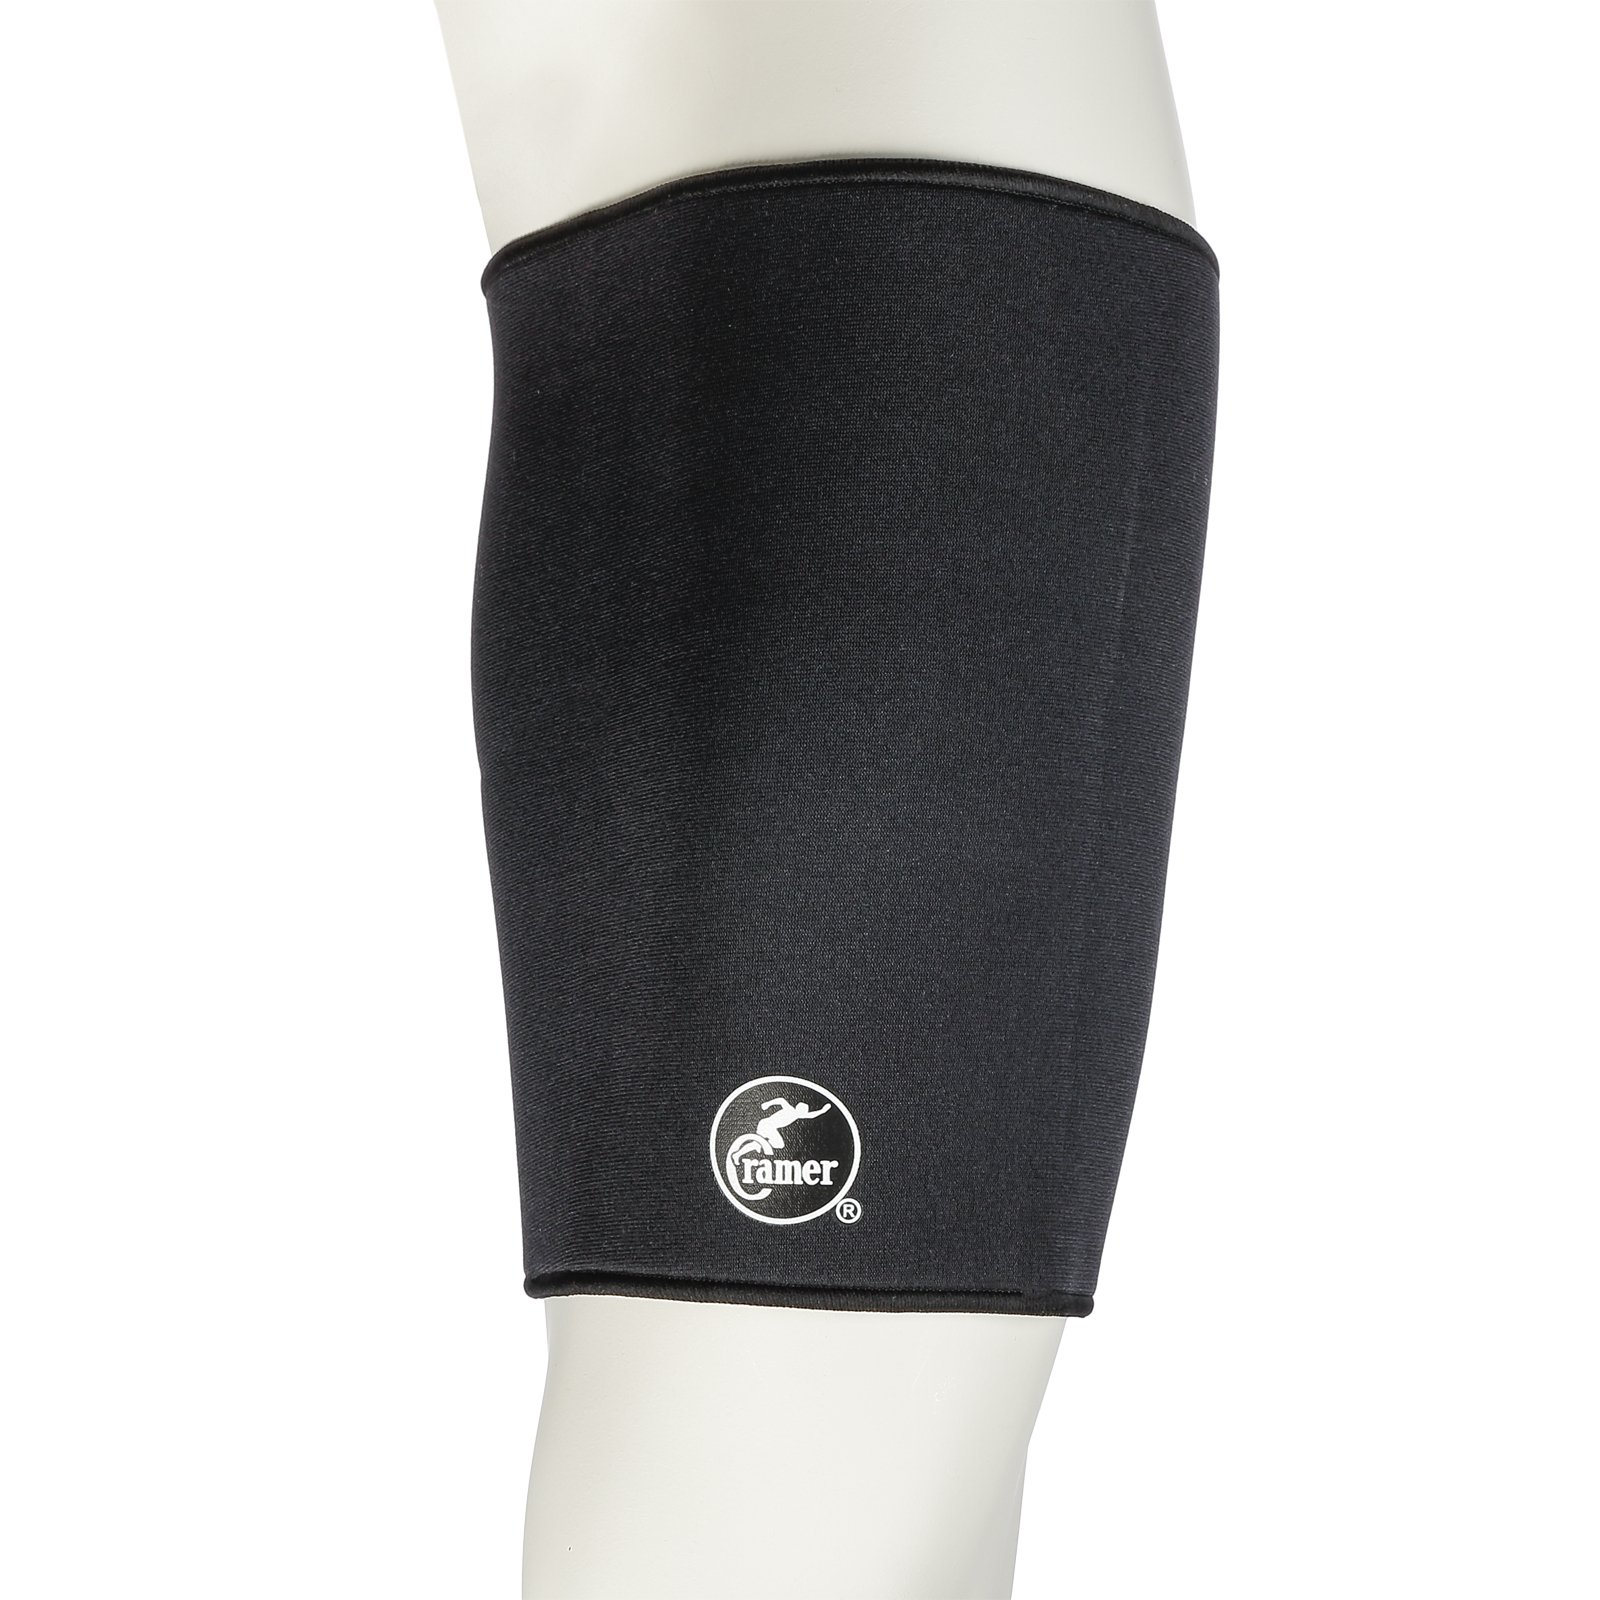 Cramer Neoprene Thigh Compression Sleeve, Best Thigh Support For Quadriceps & Hamstrings, Compression Sleeves For Running, Quad Support Compression Leg Sleeves, Pulled Muscle Recovery, Black